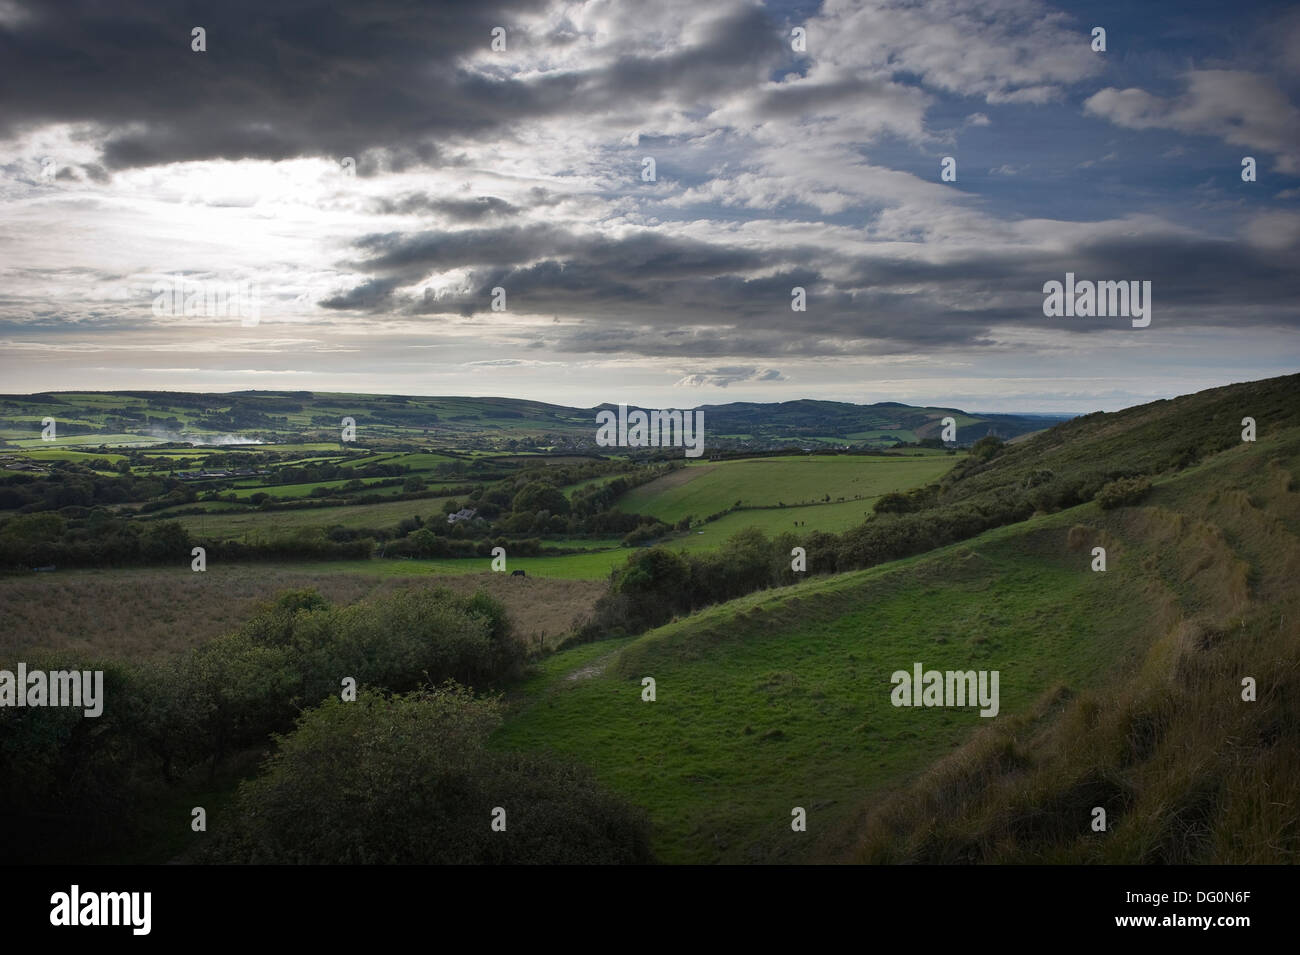 Early evening over the Purbeck Hills, Dorset, UK - Stock Image